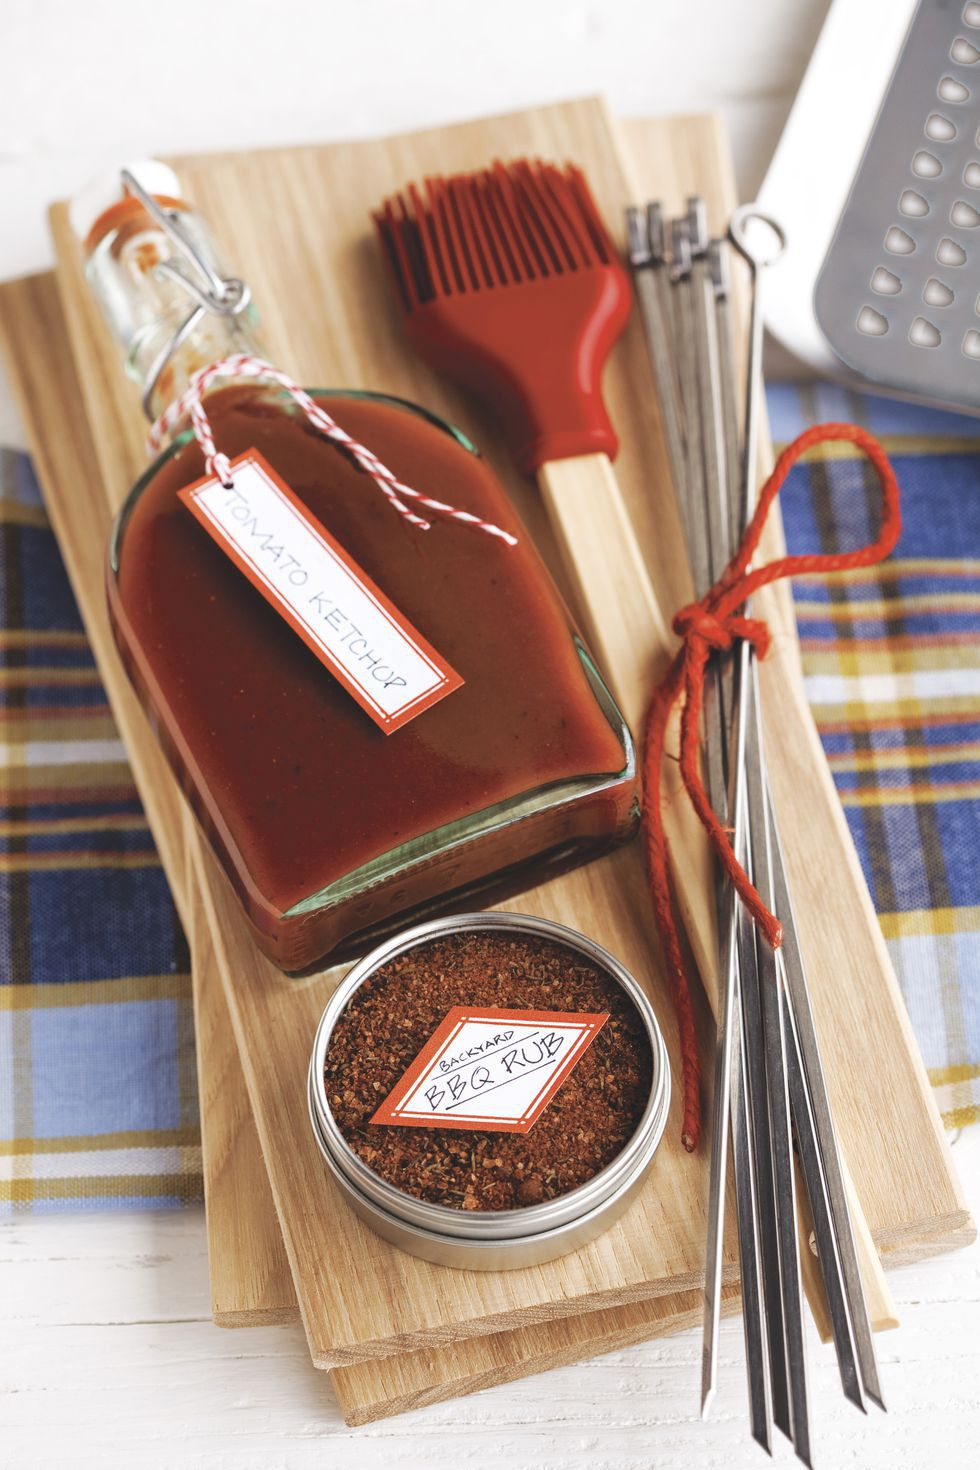 Great Homemade Christmas Gifts That Won't Break the Bank ...